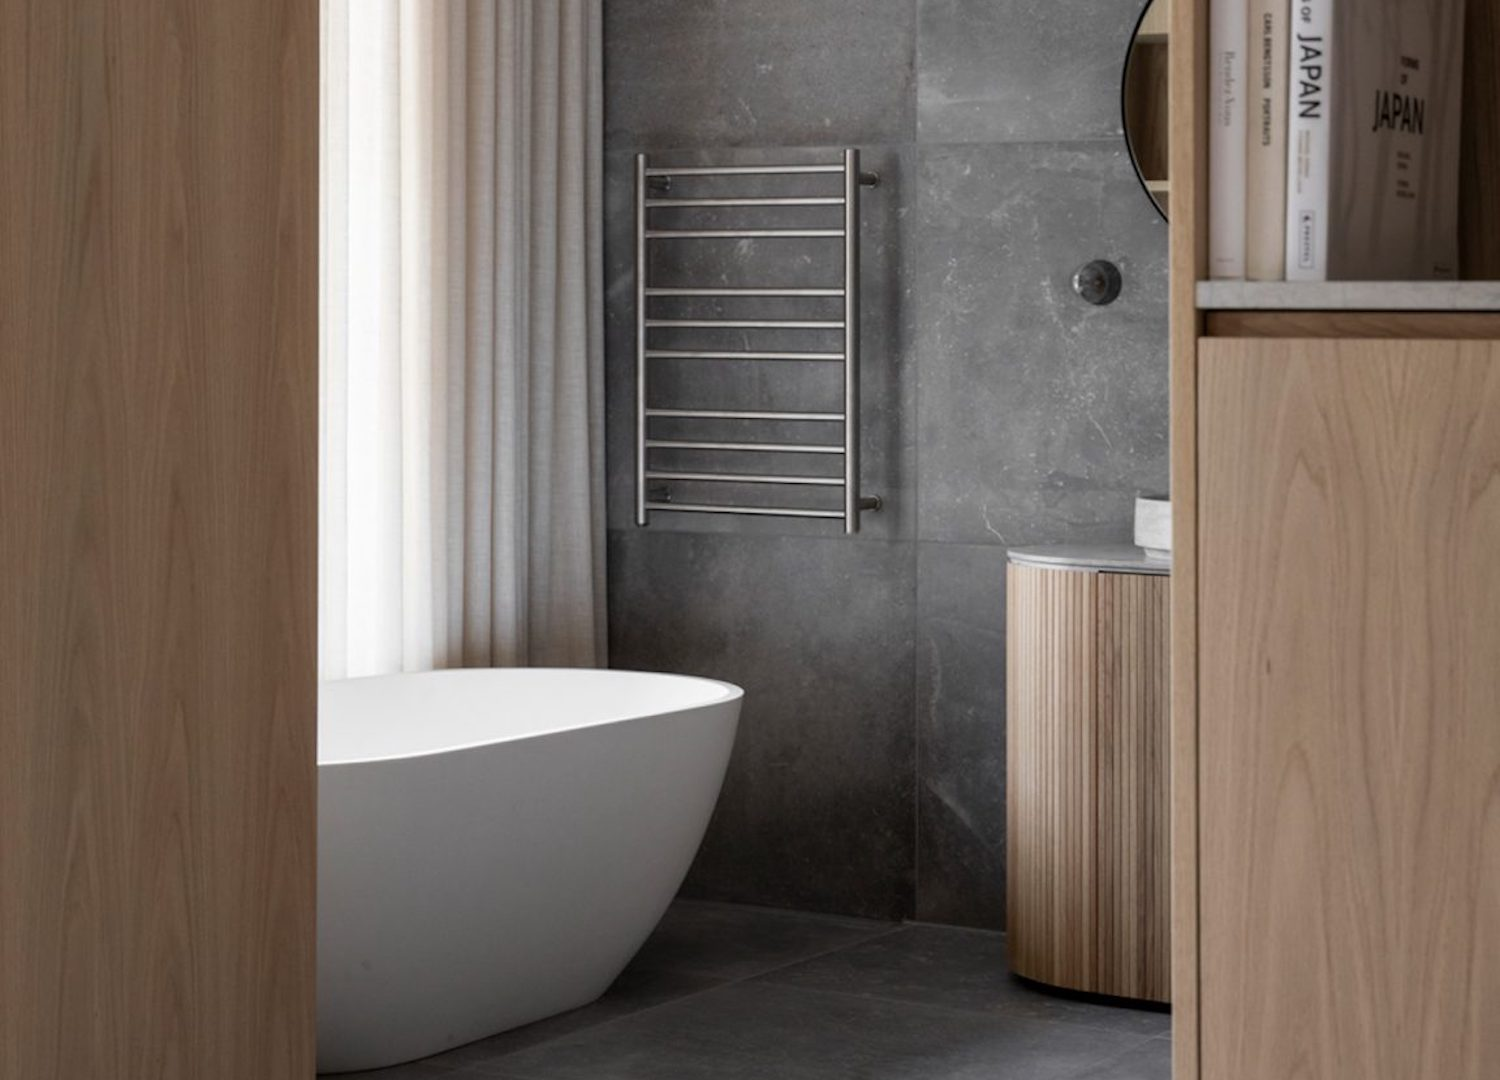 est living abey freestanding baths nordic 01 1152x1536 1